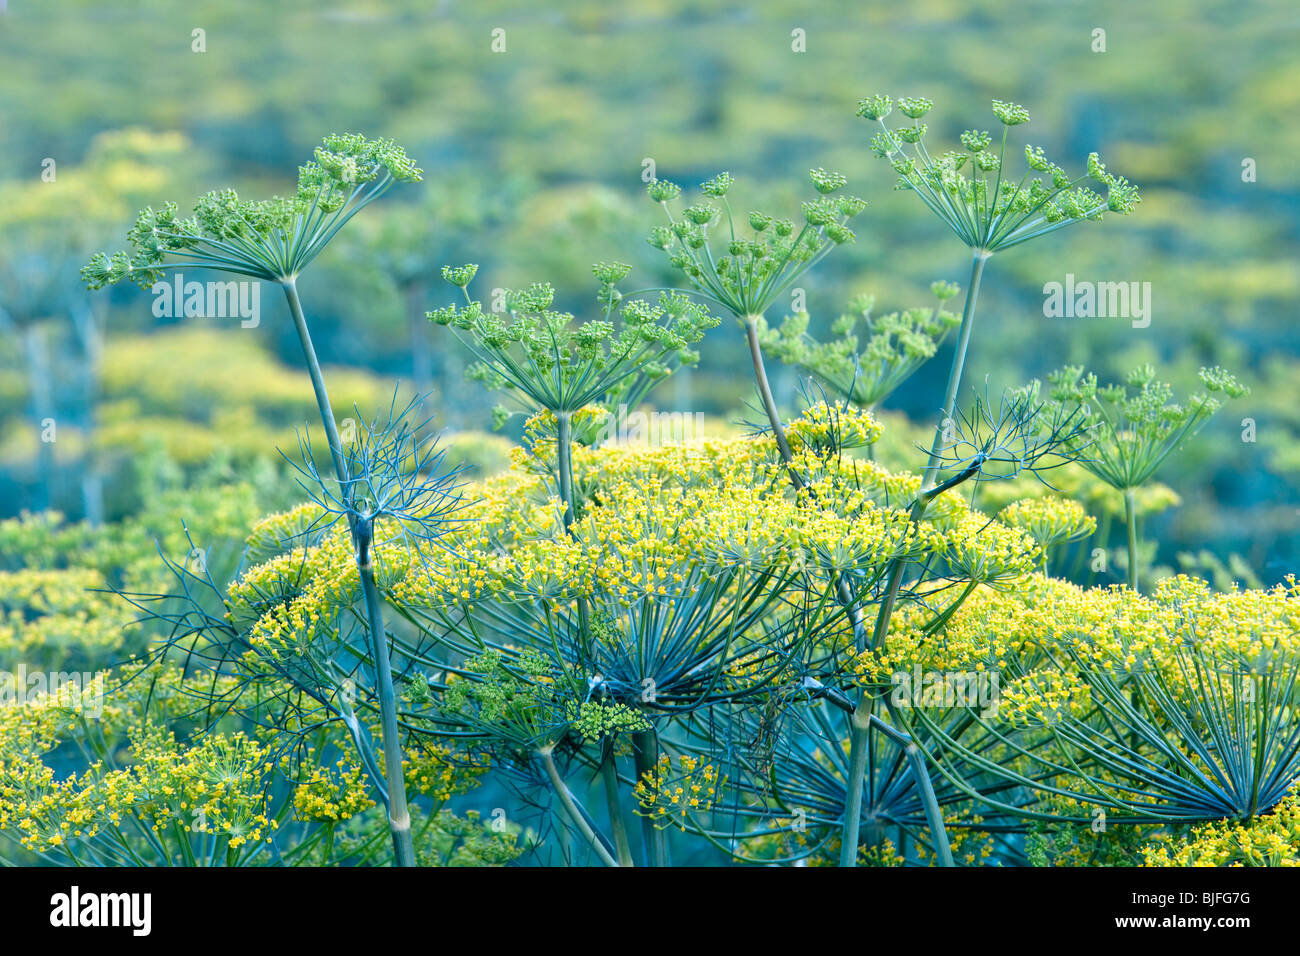 Dill 'Anethum graveolens'  flowering in field. - Stock Image